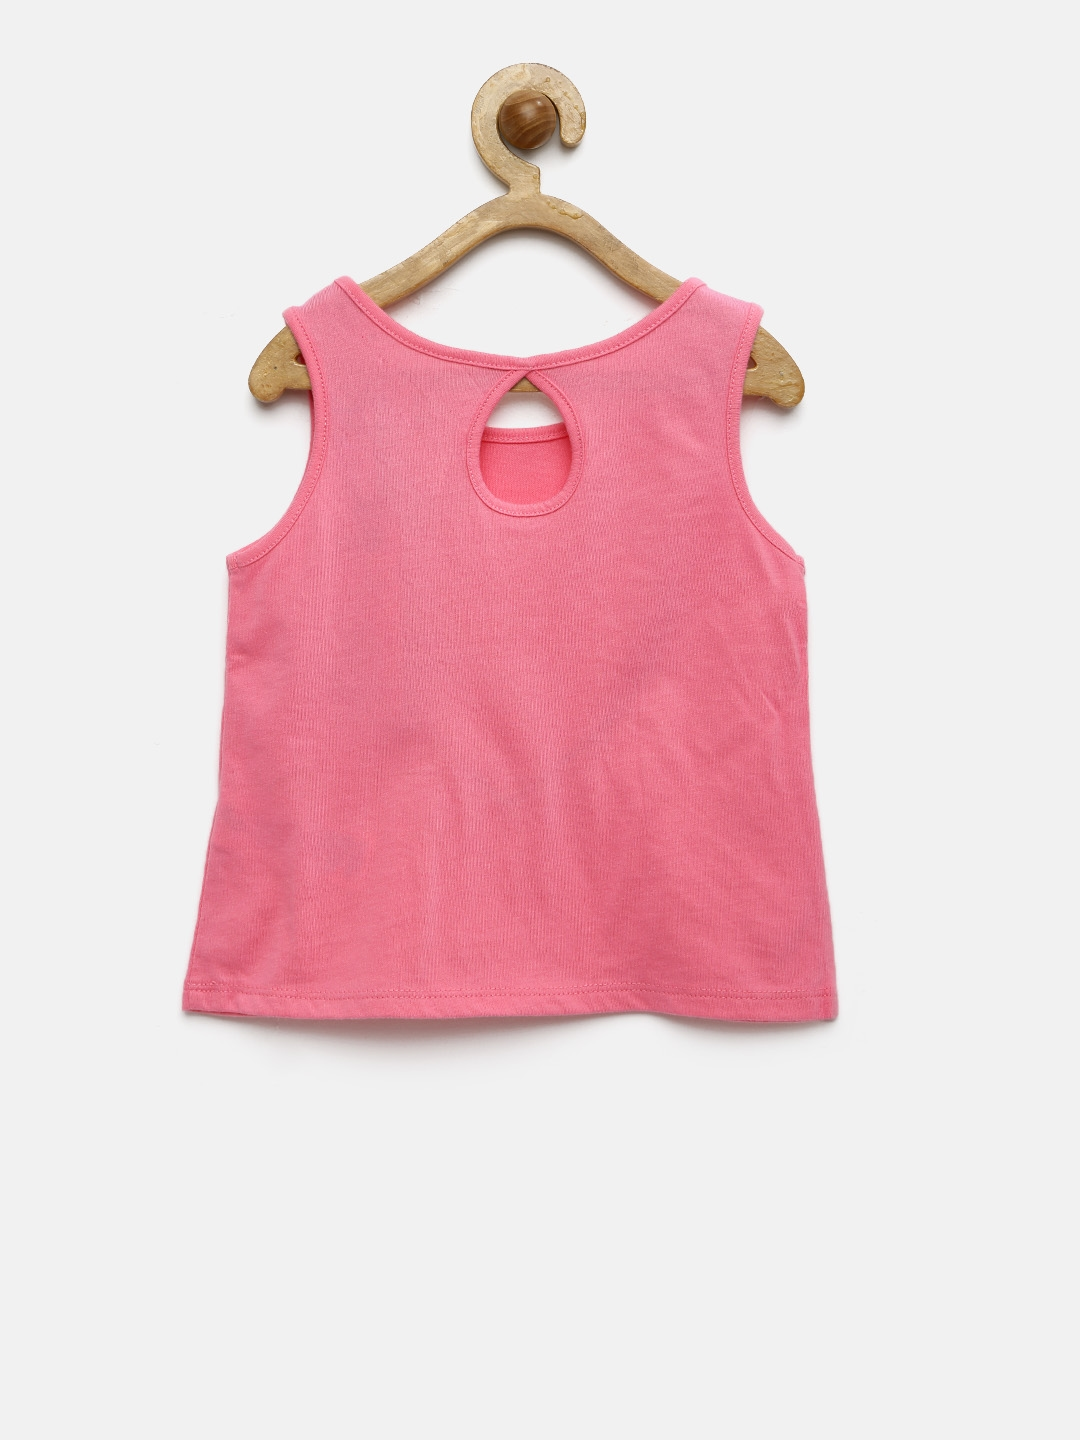 438c53c9bab57 Buy The Childrens Place Girls Pink Printed Tank Top - Tops for Girls ...